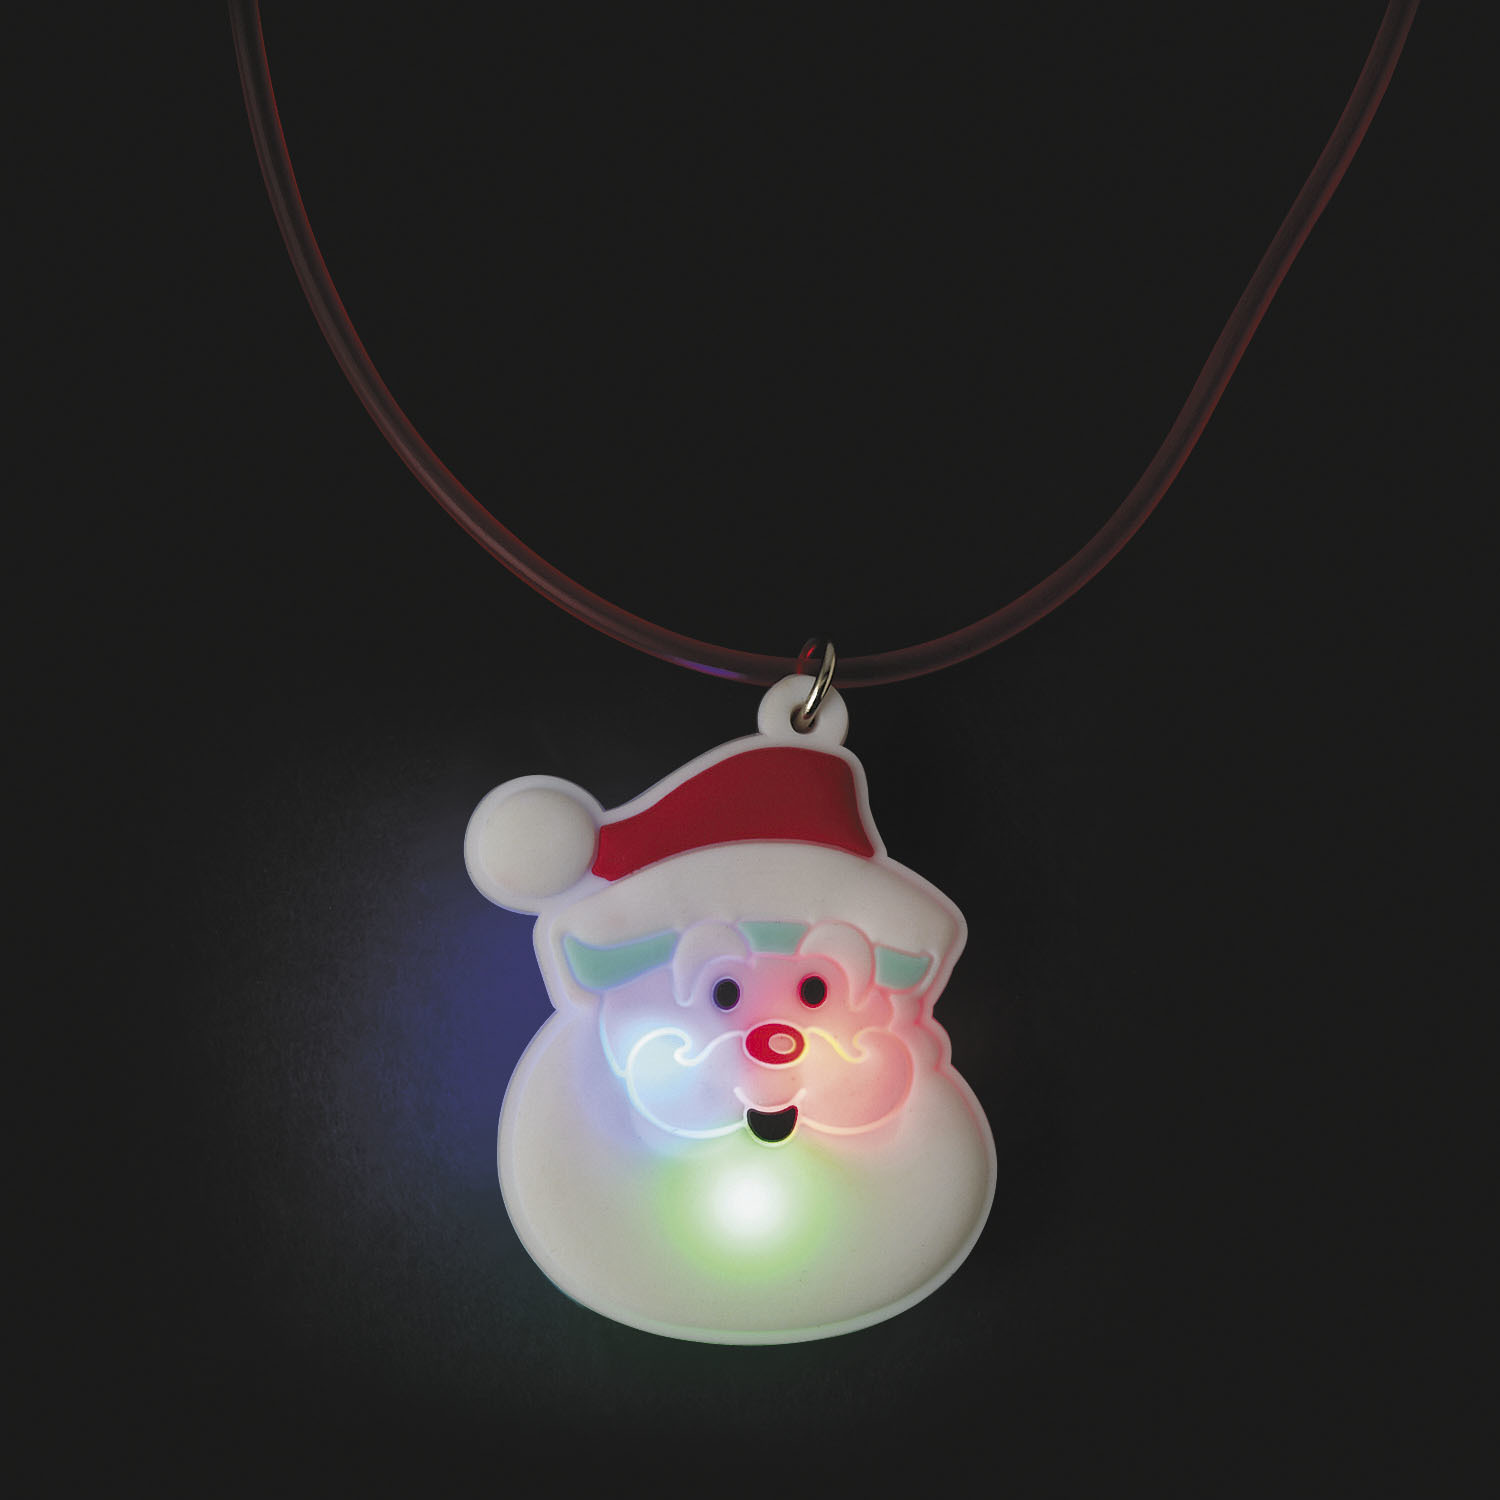 wholesale santa light up necklace sku 2277918 dollardays. Black Bedroom Furniture Sets. Home Design Ideas